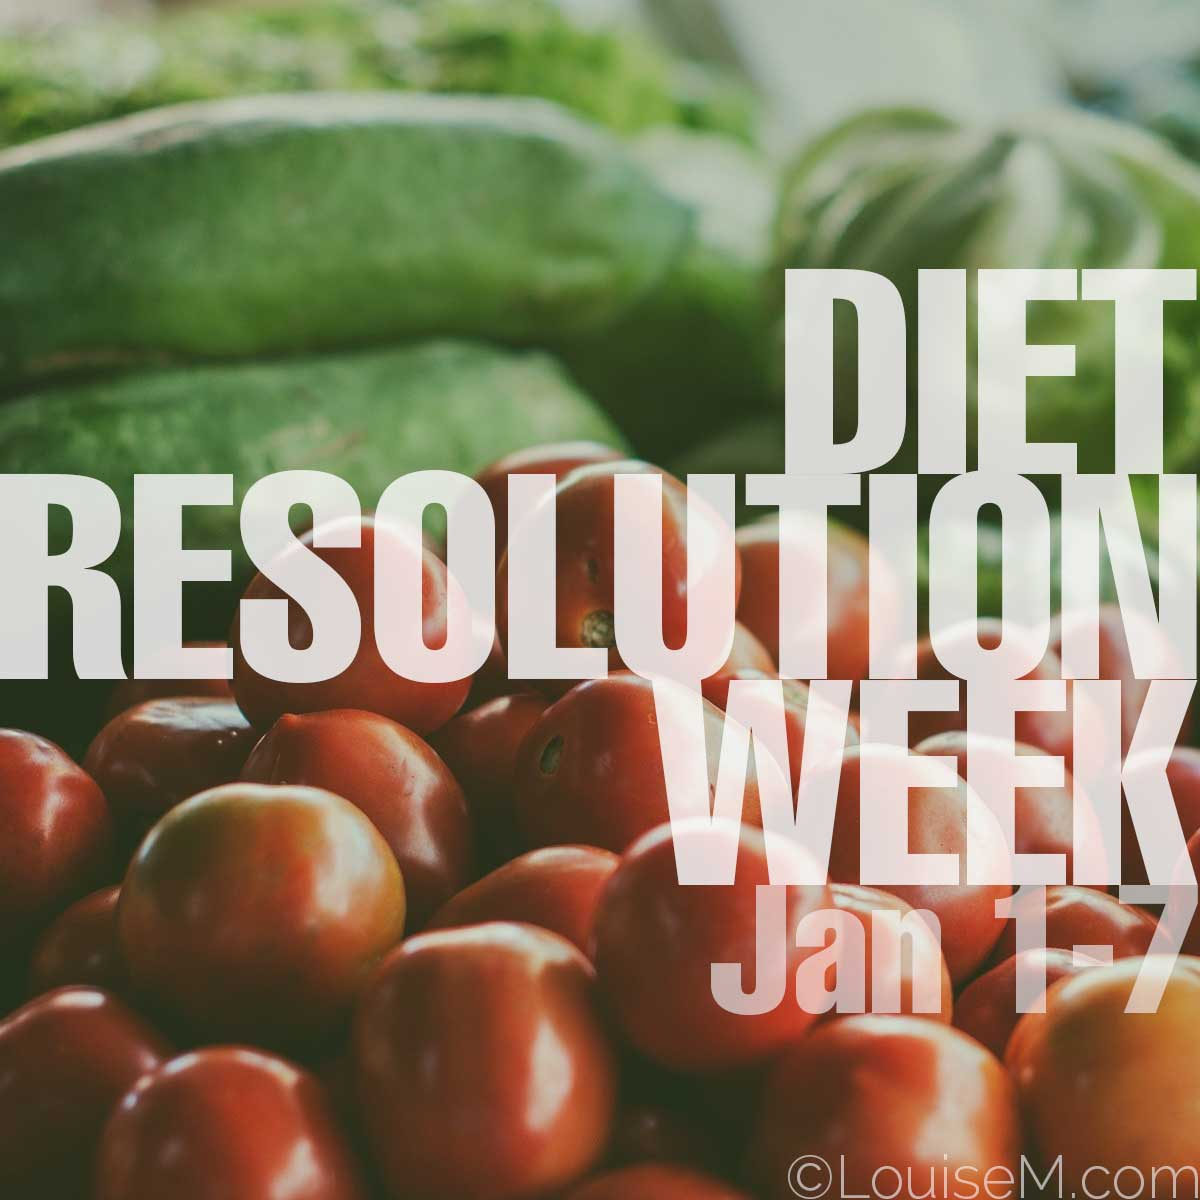 diet resolution week text of photo of vegetables.